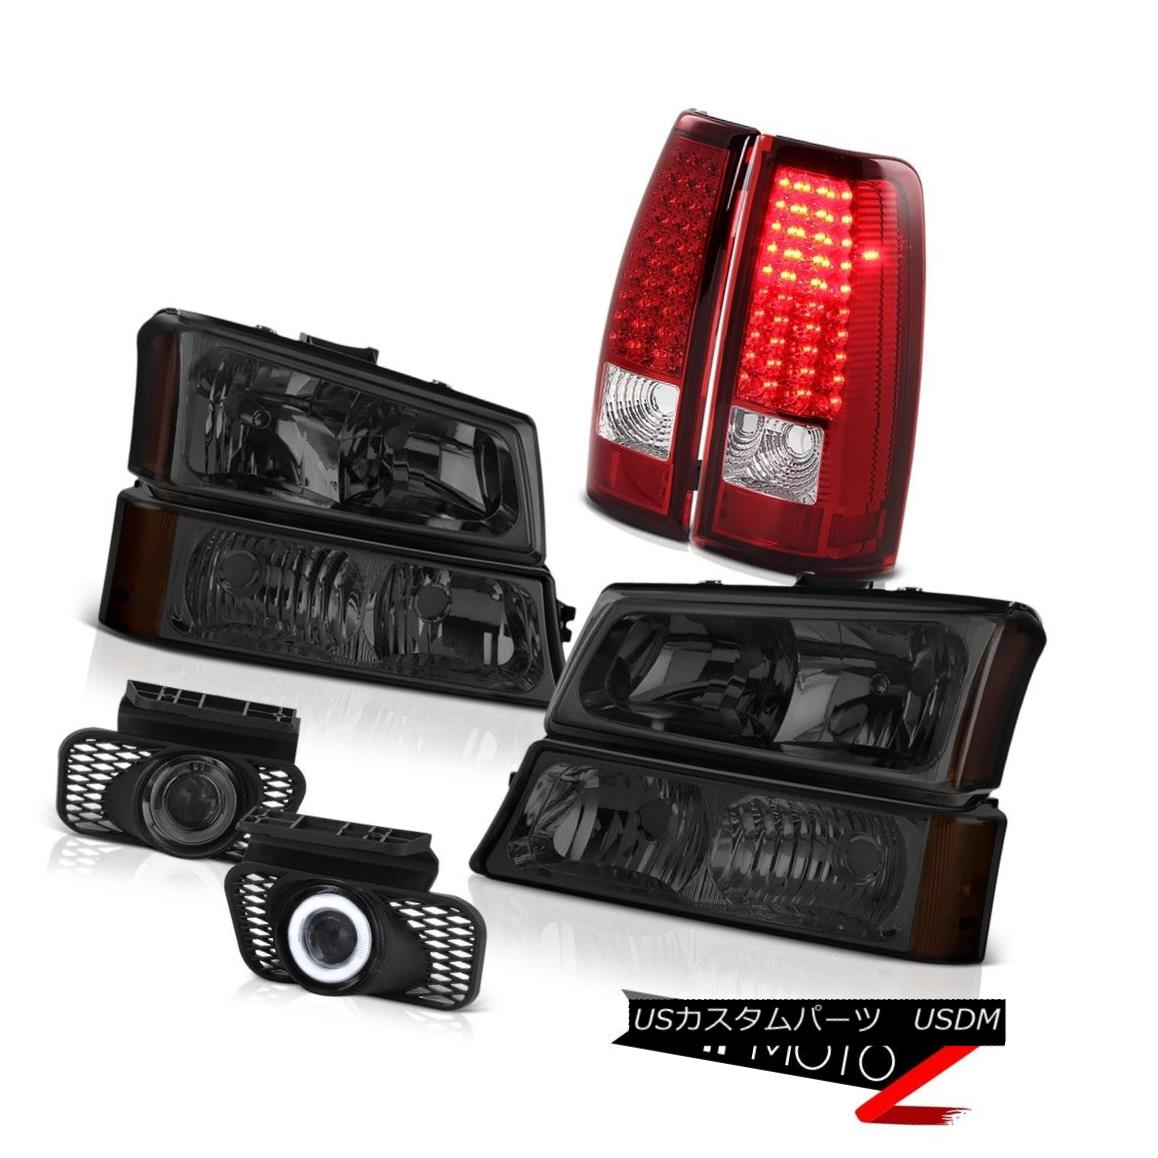 ヘッドライト Turn Signal Headlamp Chrome Taillamp Tinted Projector Foglamp 03-06 Silverado LT ターンシグナルヘッドランプクロムTaillamp Tinted Projector Foglamp 03-06 Silverado LT